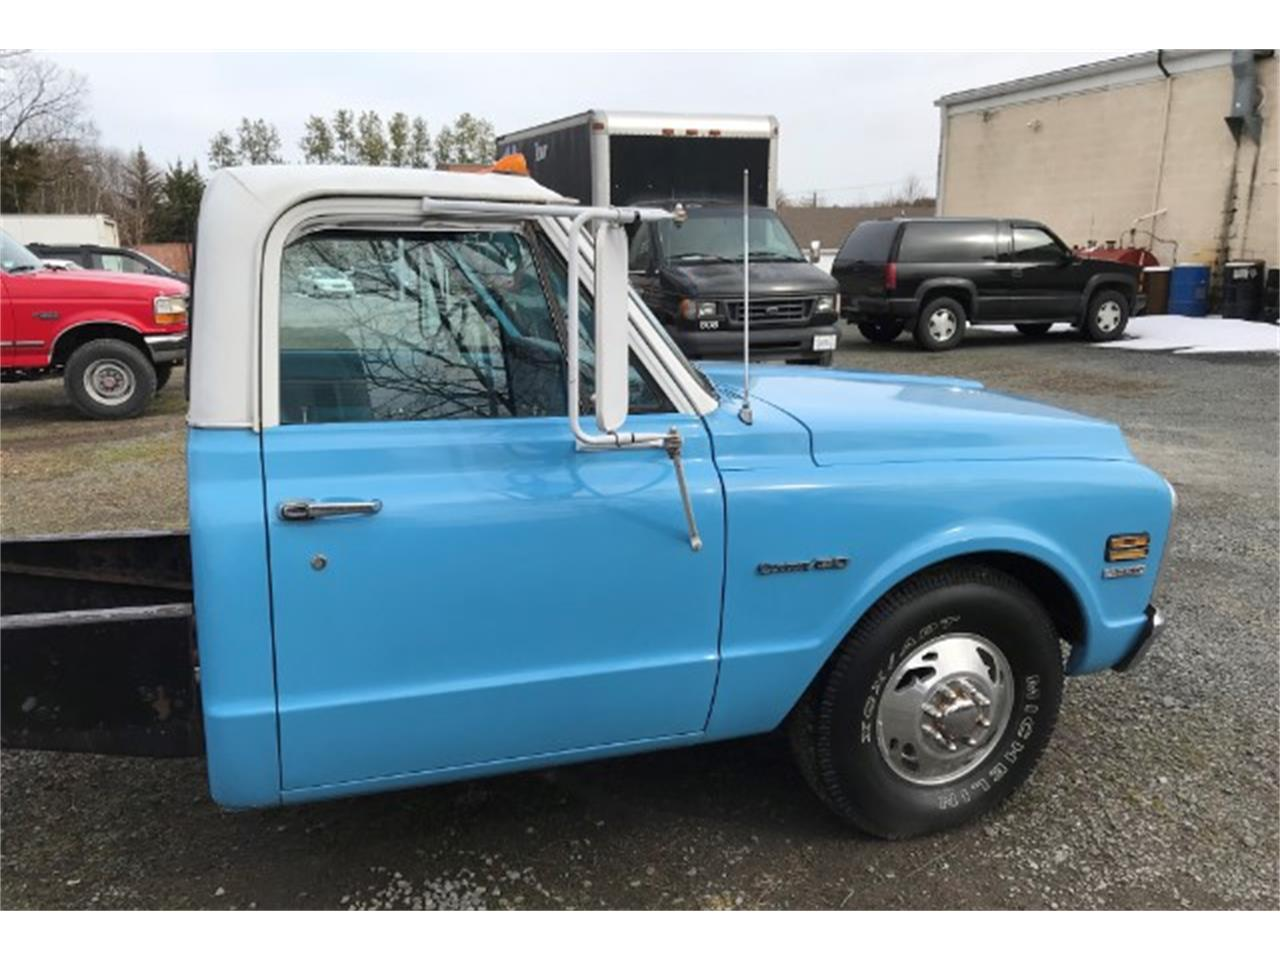 1971 Chevrolet 1 Ton Truck for sale in Harpers Ferry, WV – photo 8